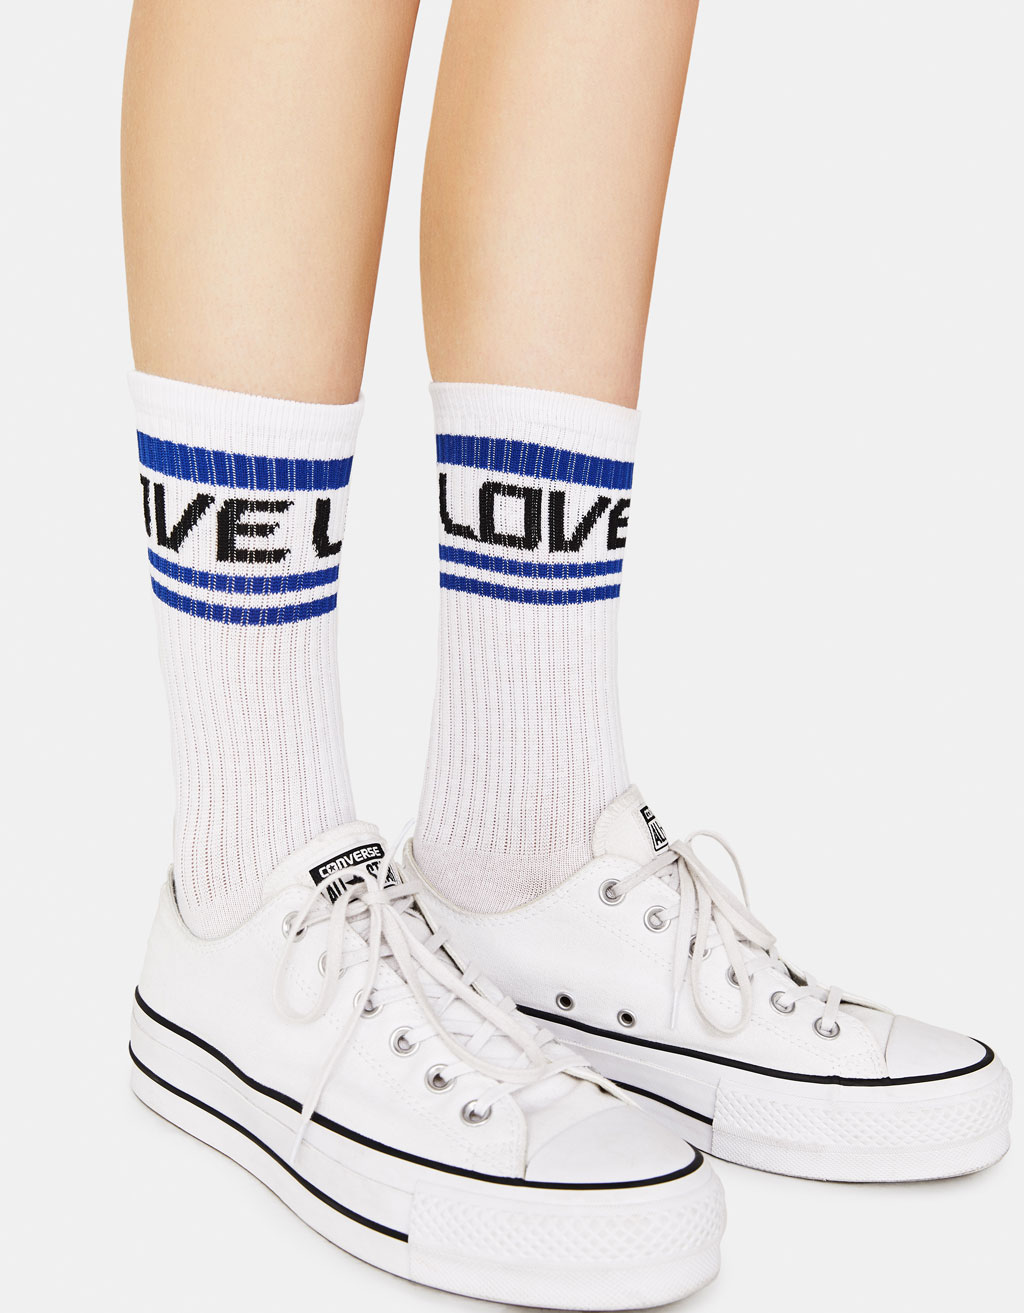 Pack of 2 pairs of 'love' socks